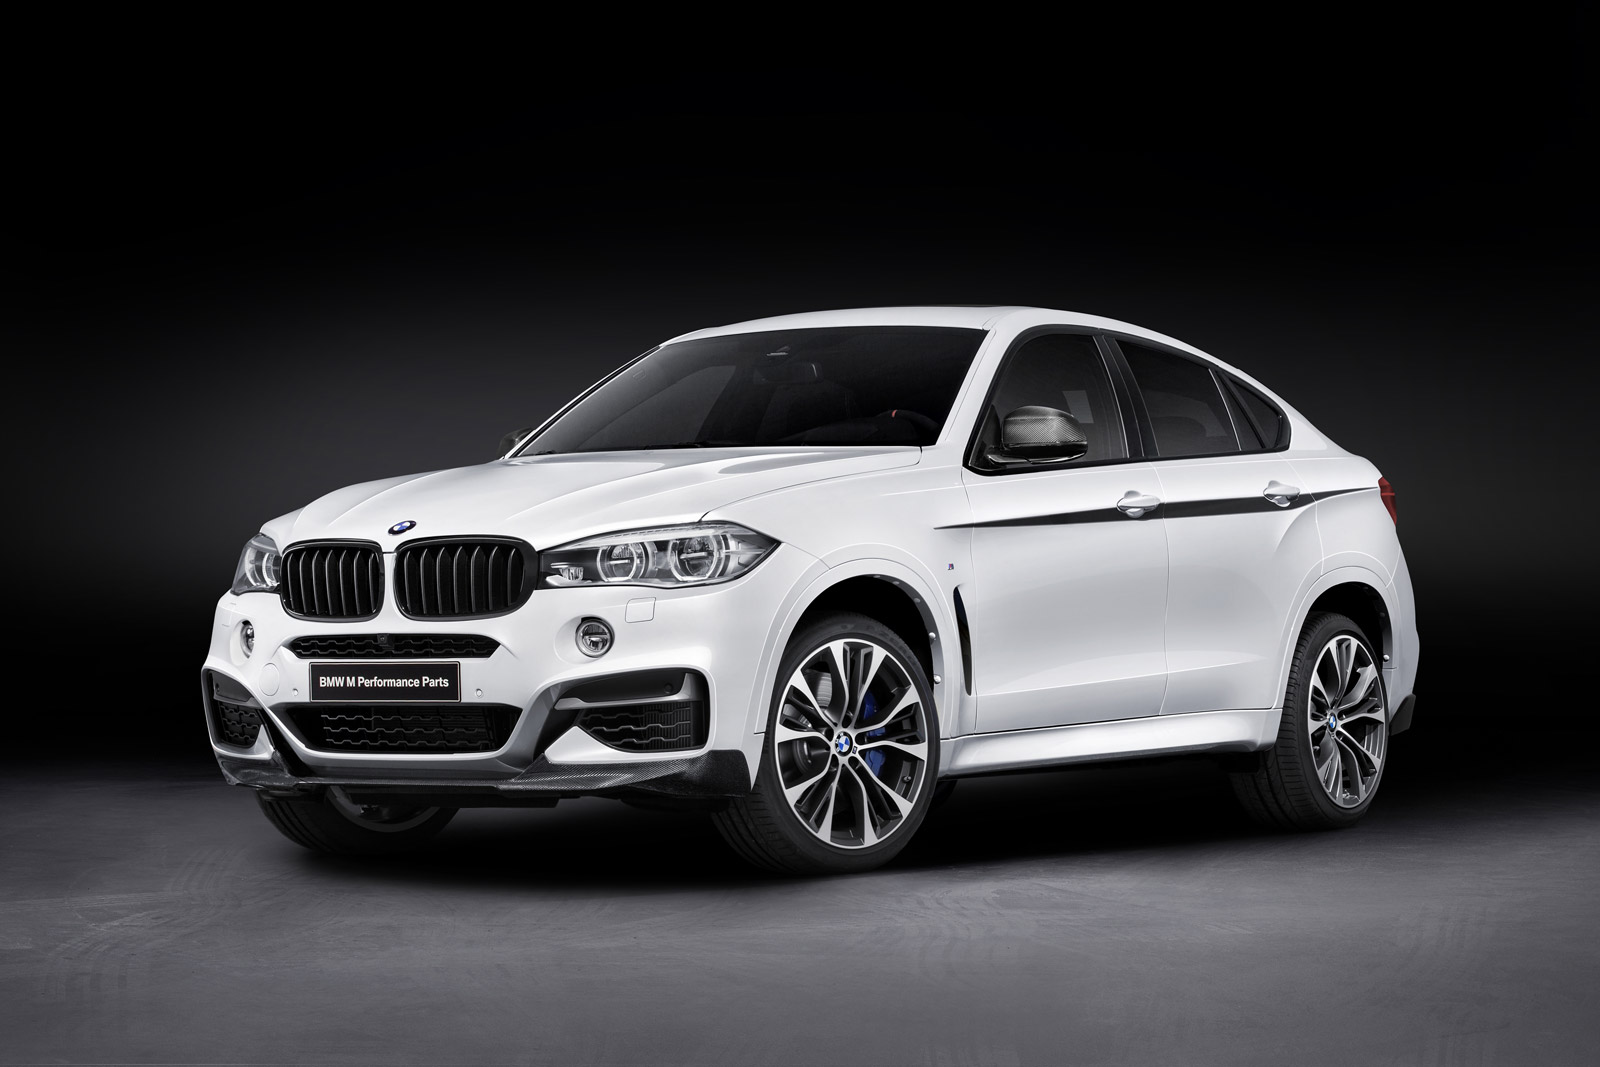 2015 Bmw X6 Gets M Performance Upgrades